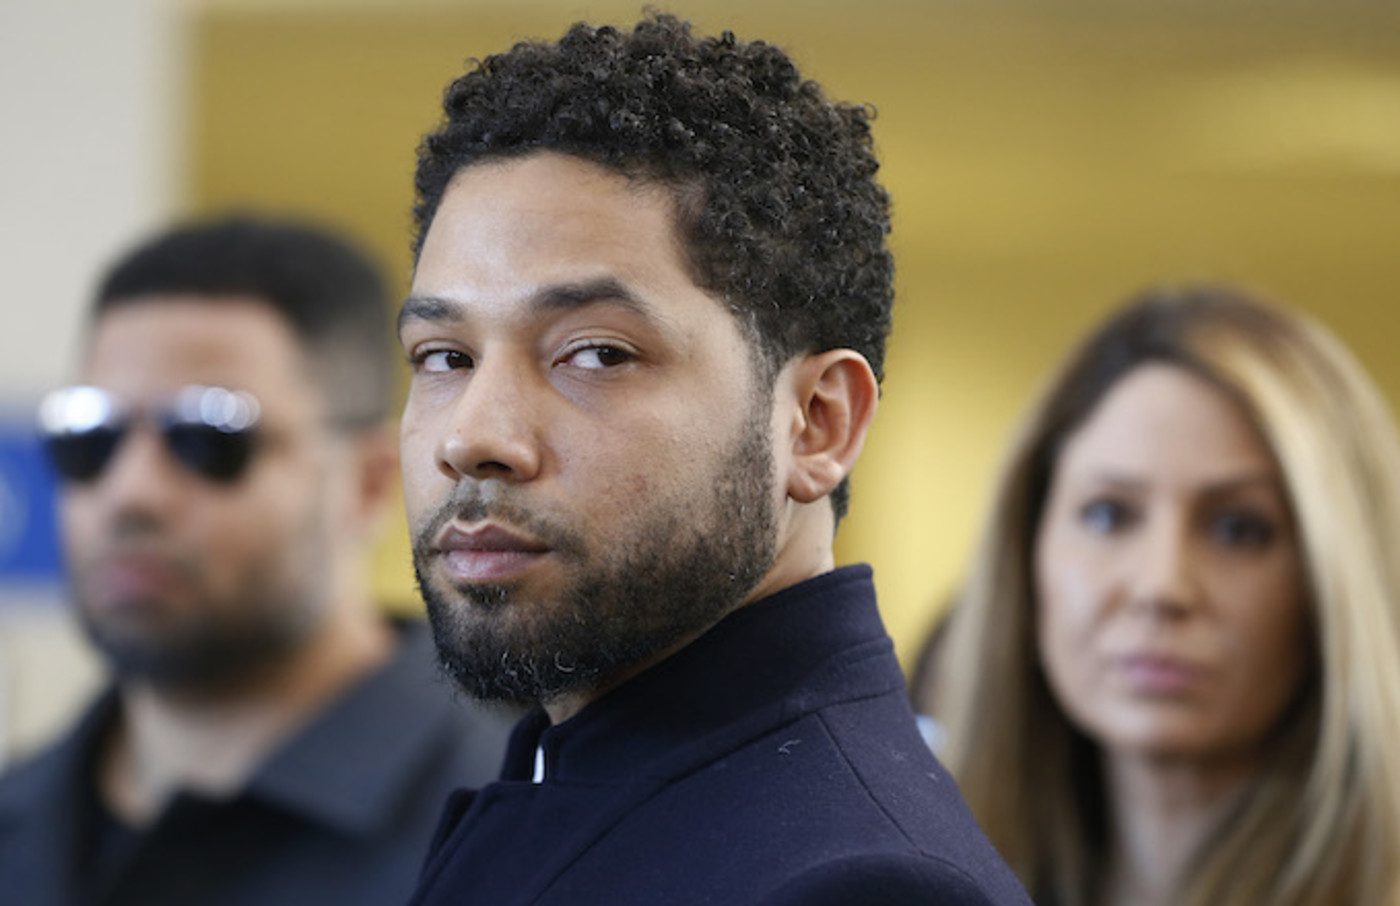 Jussie Smollett after his court appearance at Leighton Courthouse.